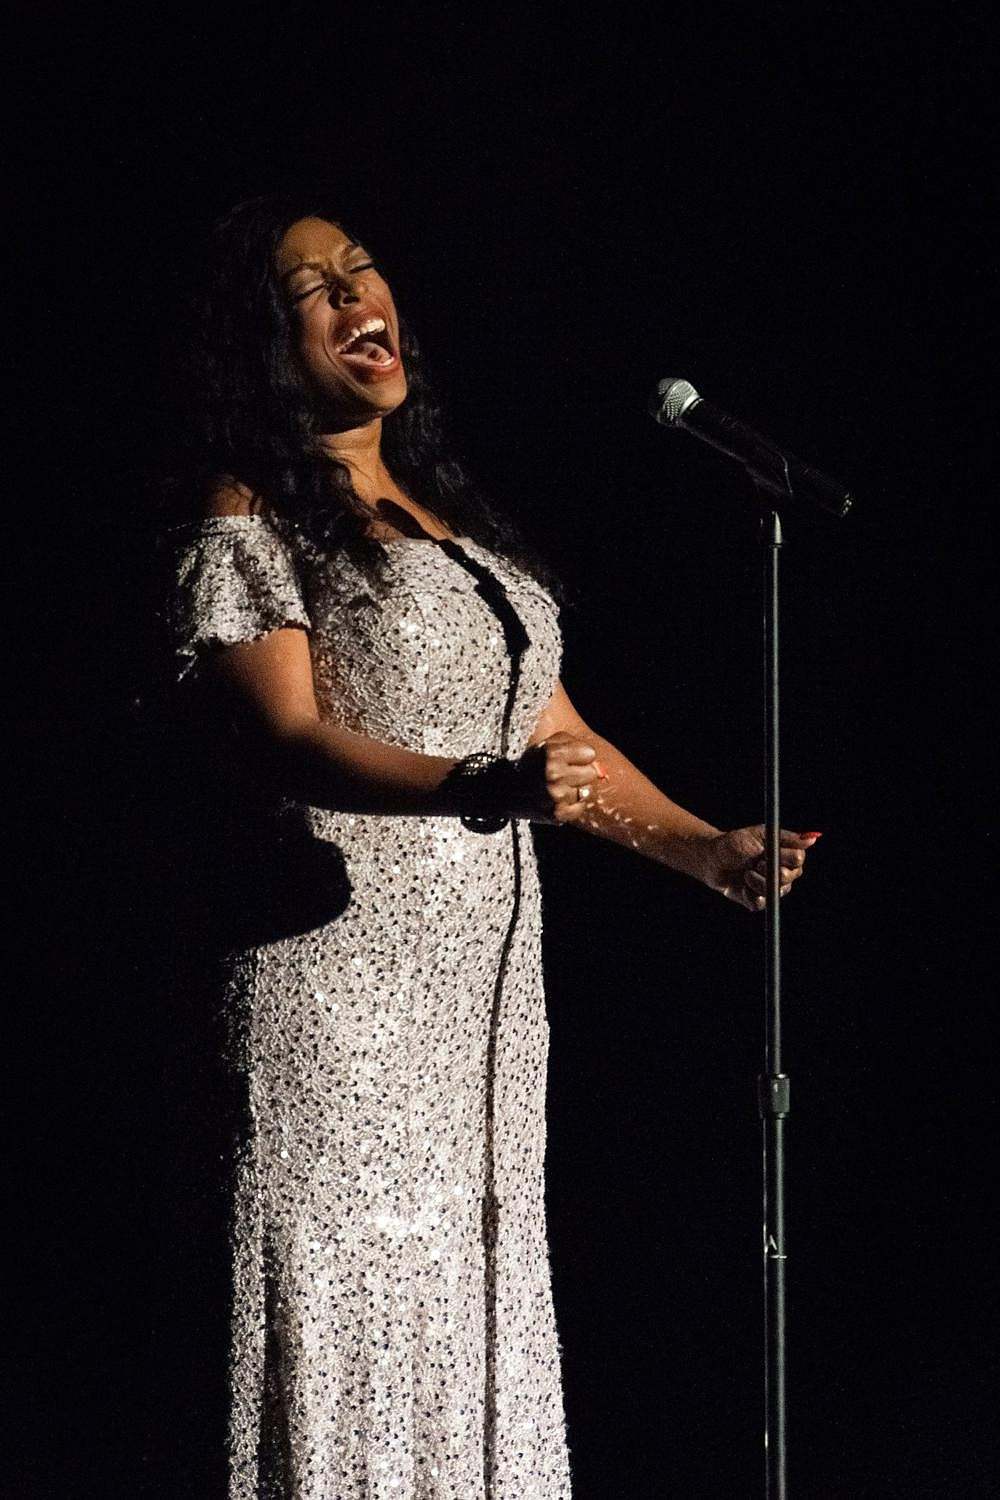 Angelica Glass performs during the Arts & Science Center's Razzle Dazzle in October 2019. Glass is one of the performers scheduled to appear during Heart for the Arts Telethon on Nov. 13-14.  (Special to The Commercial)